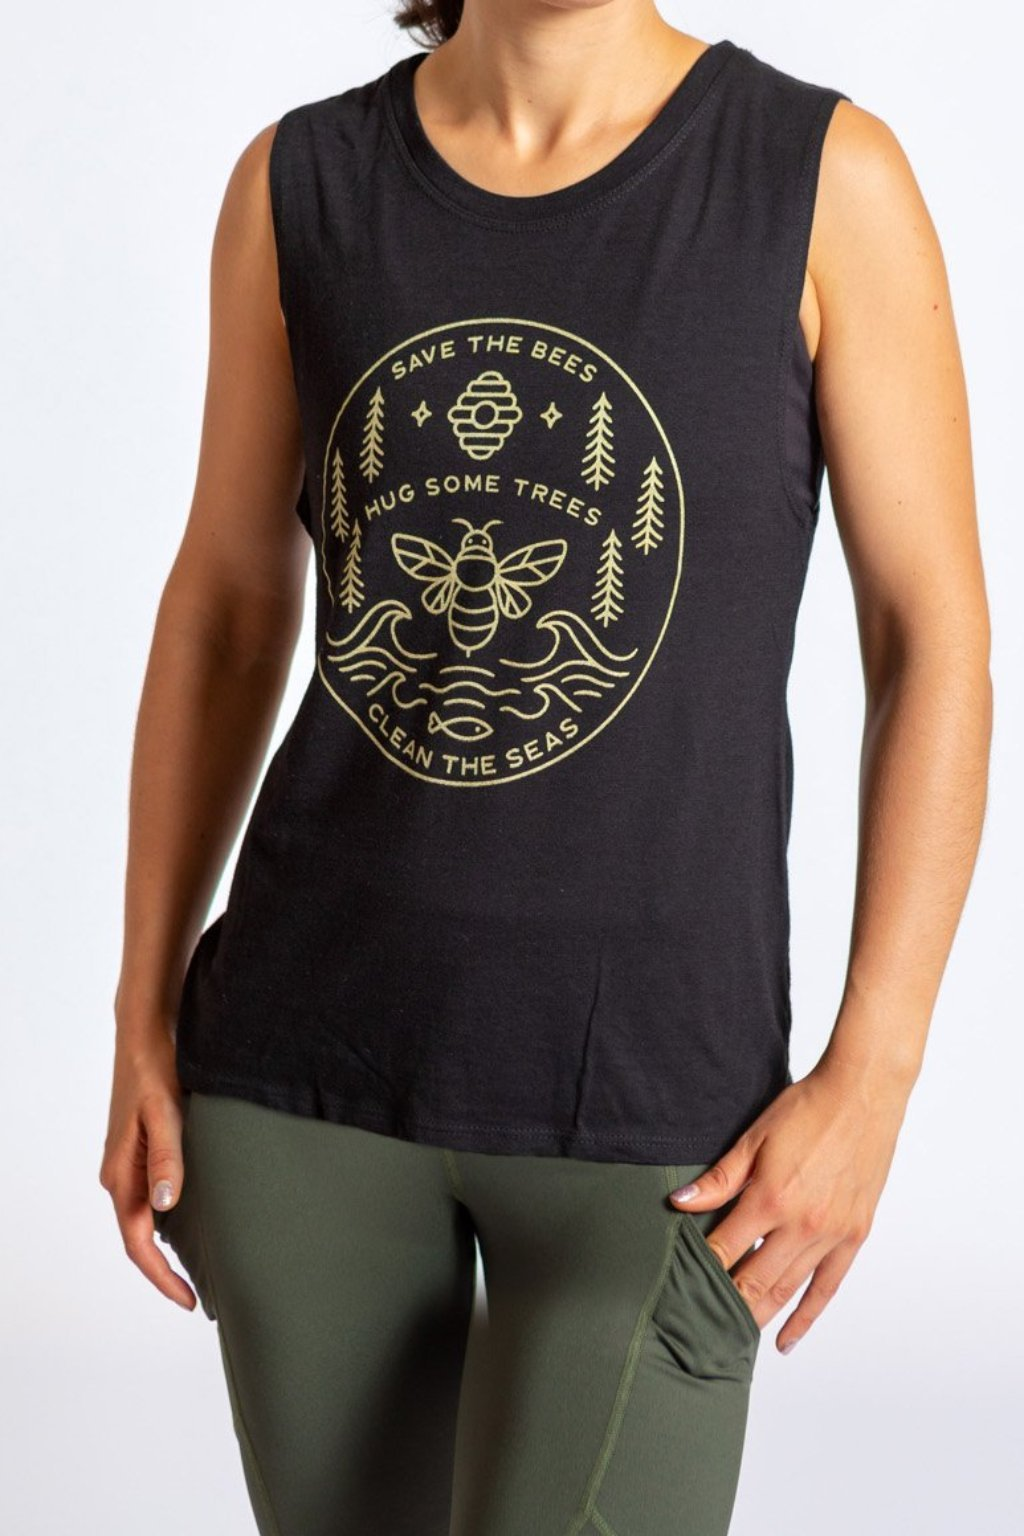 INNER FIRE - Save the Bees Tank Top